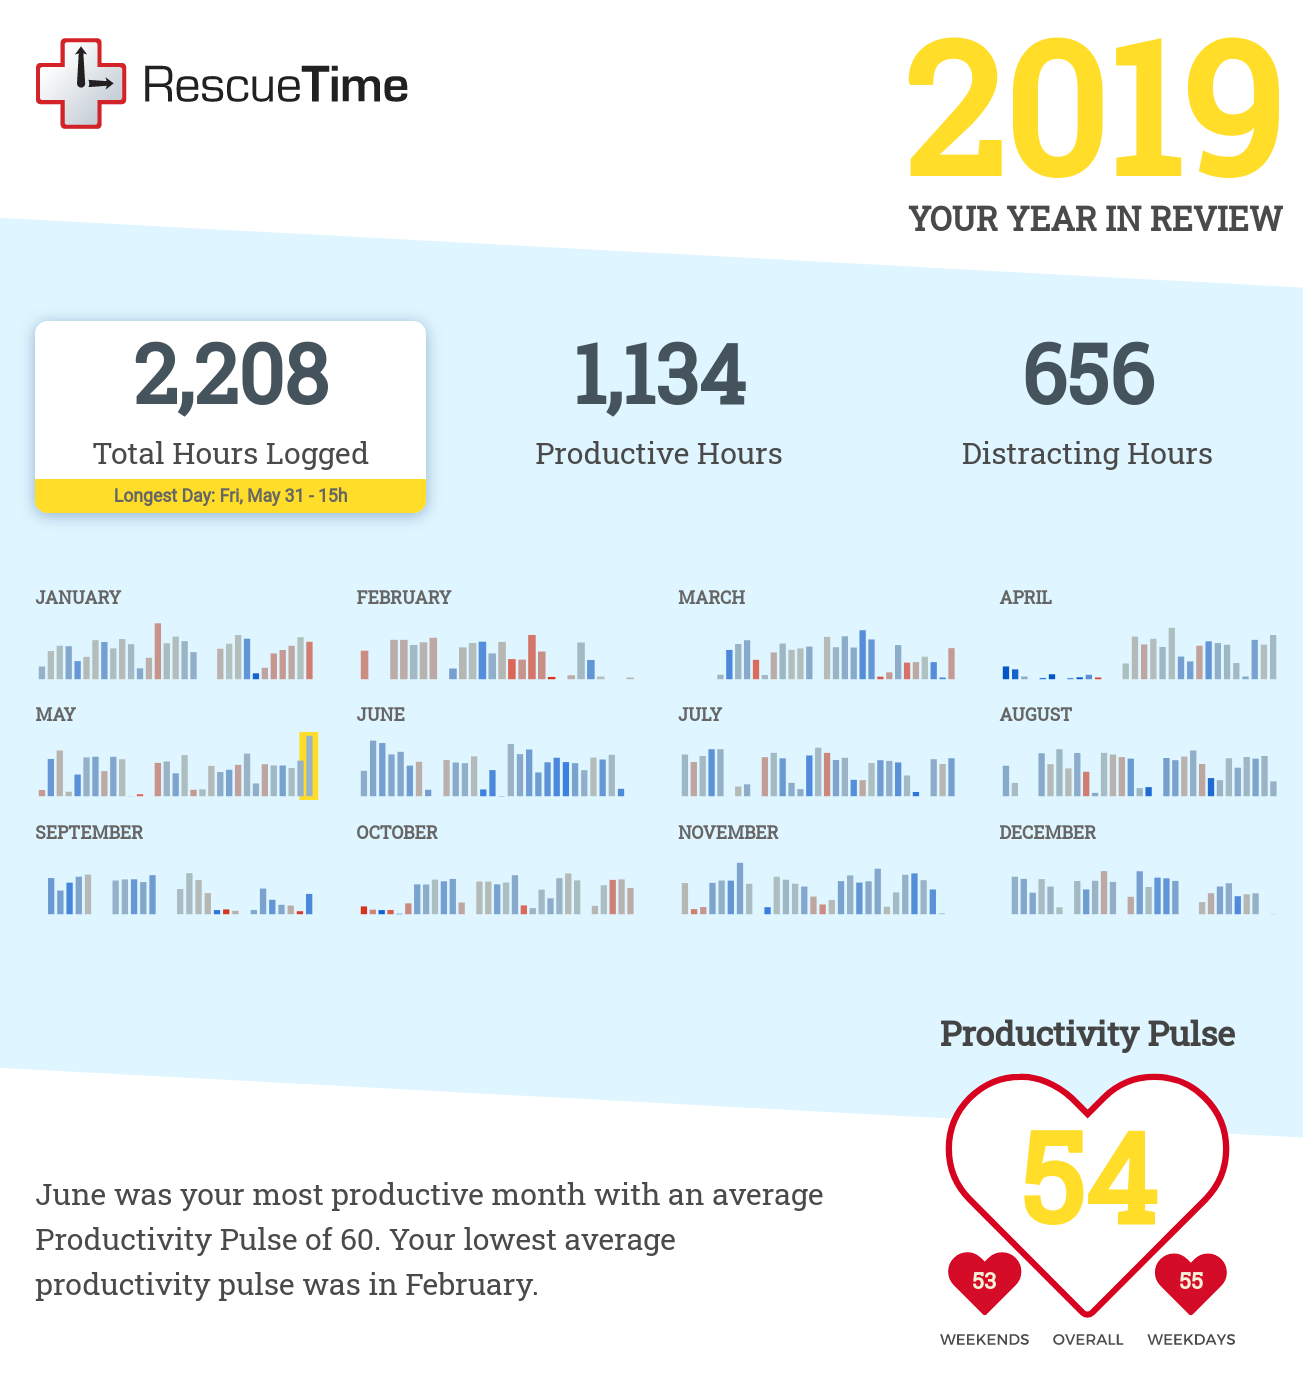 An infographic with information for every month of 2019 in small bars and text about productivity. 2208 total hours logged, 1134 productive hours, and 525 distracting hours. My productivity pulse is 54